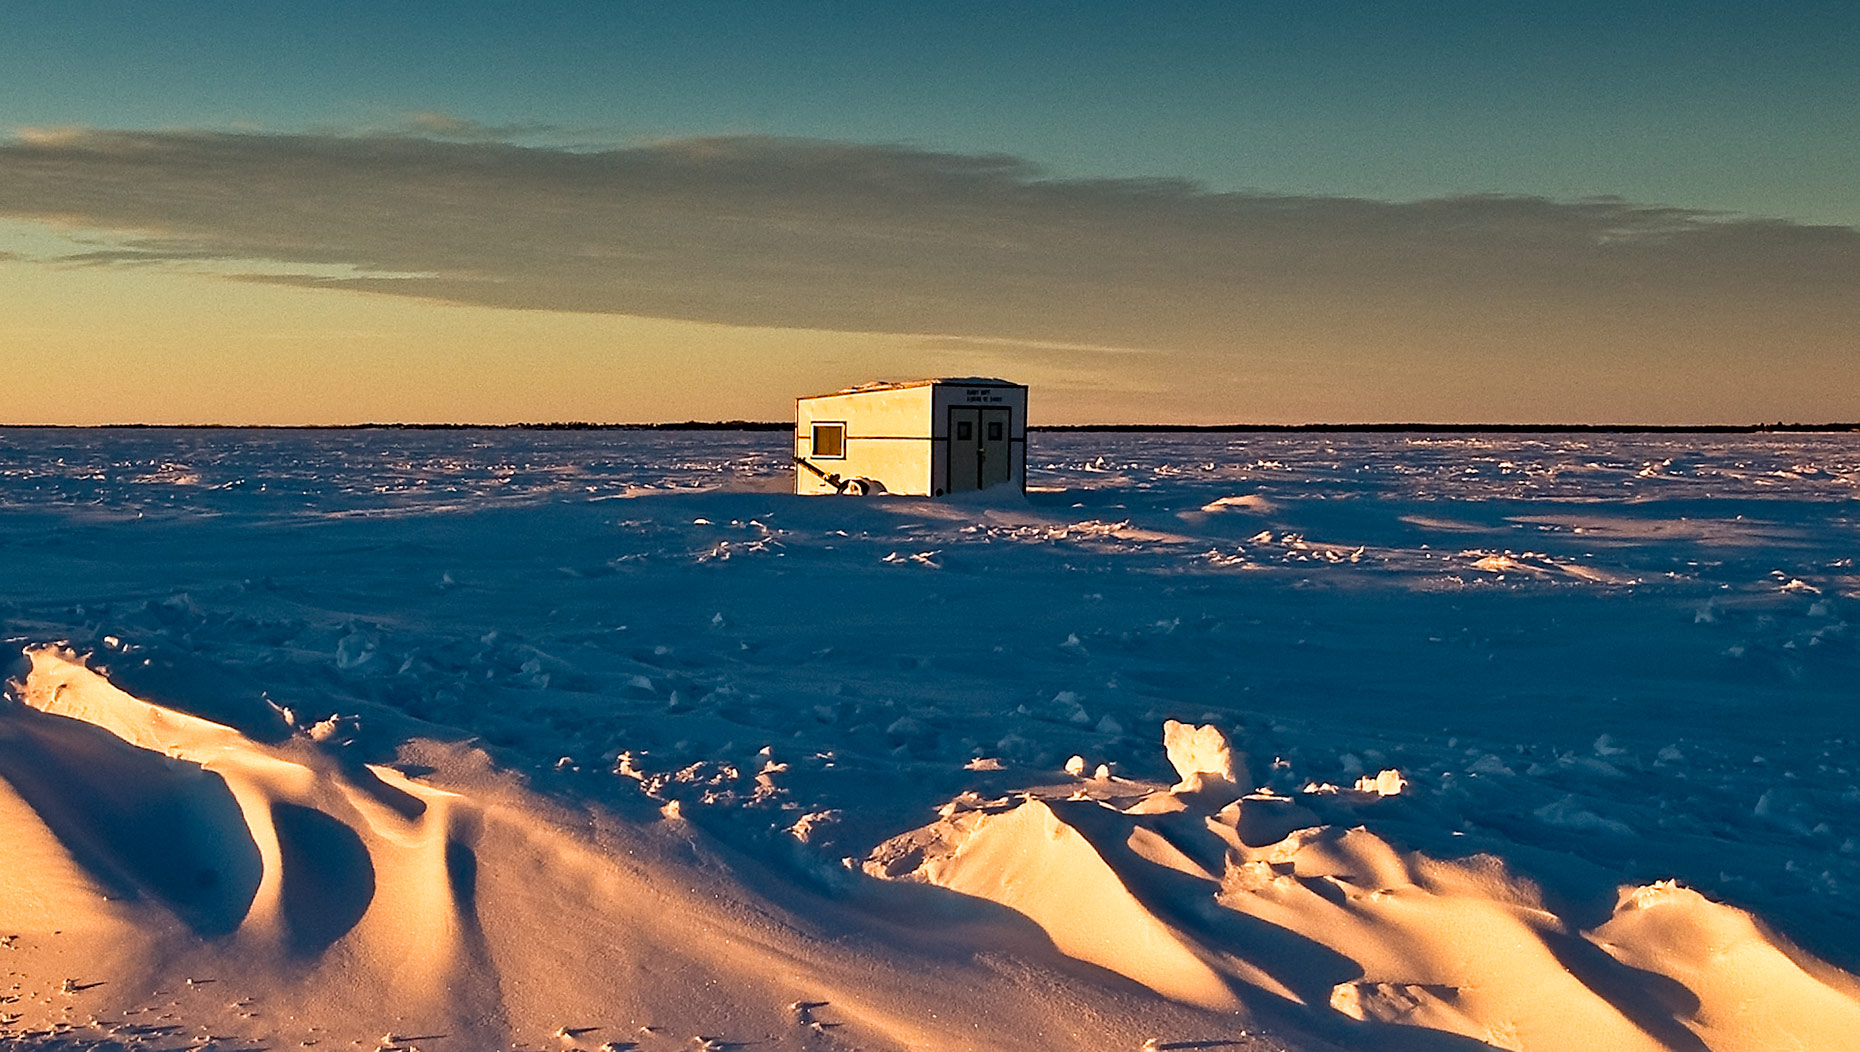 North Dakota icefishing hut on Devil